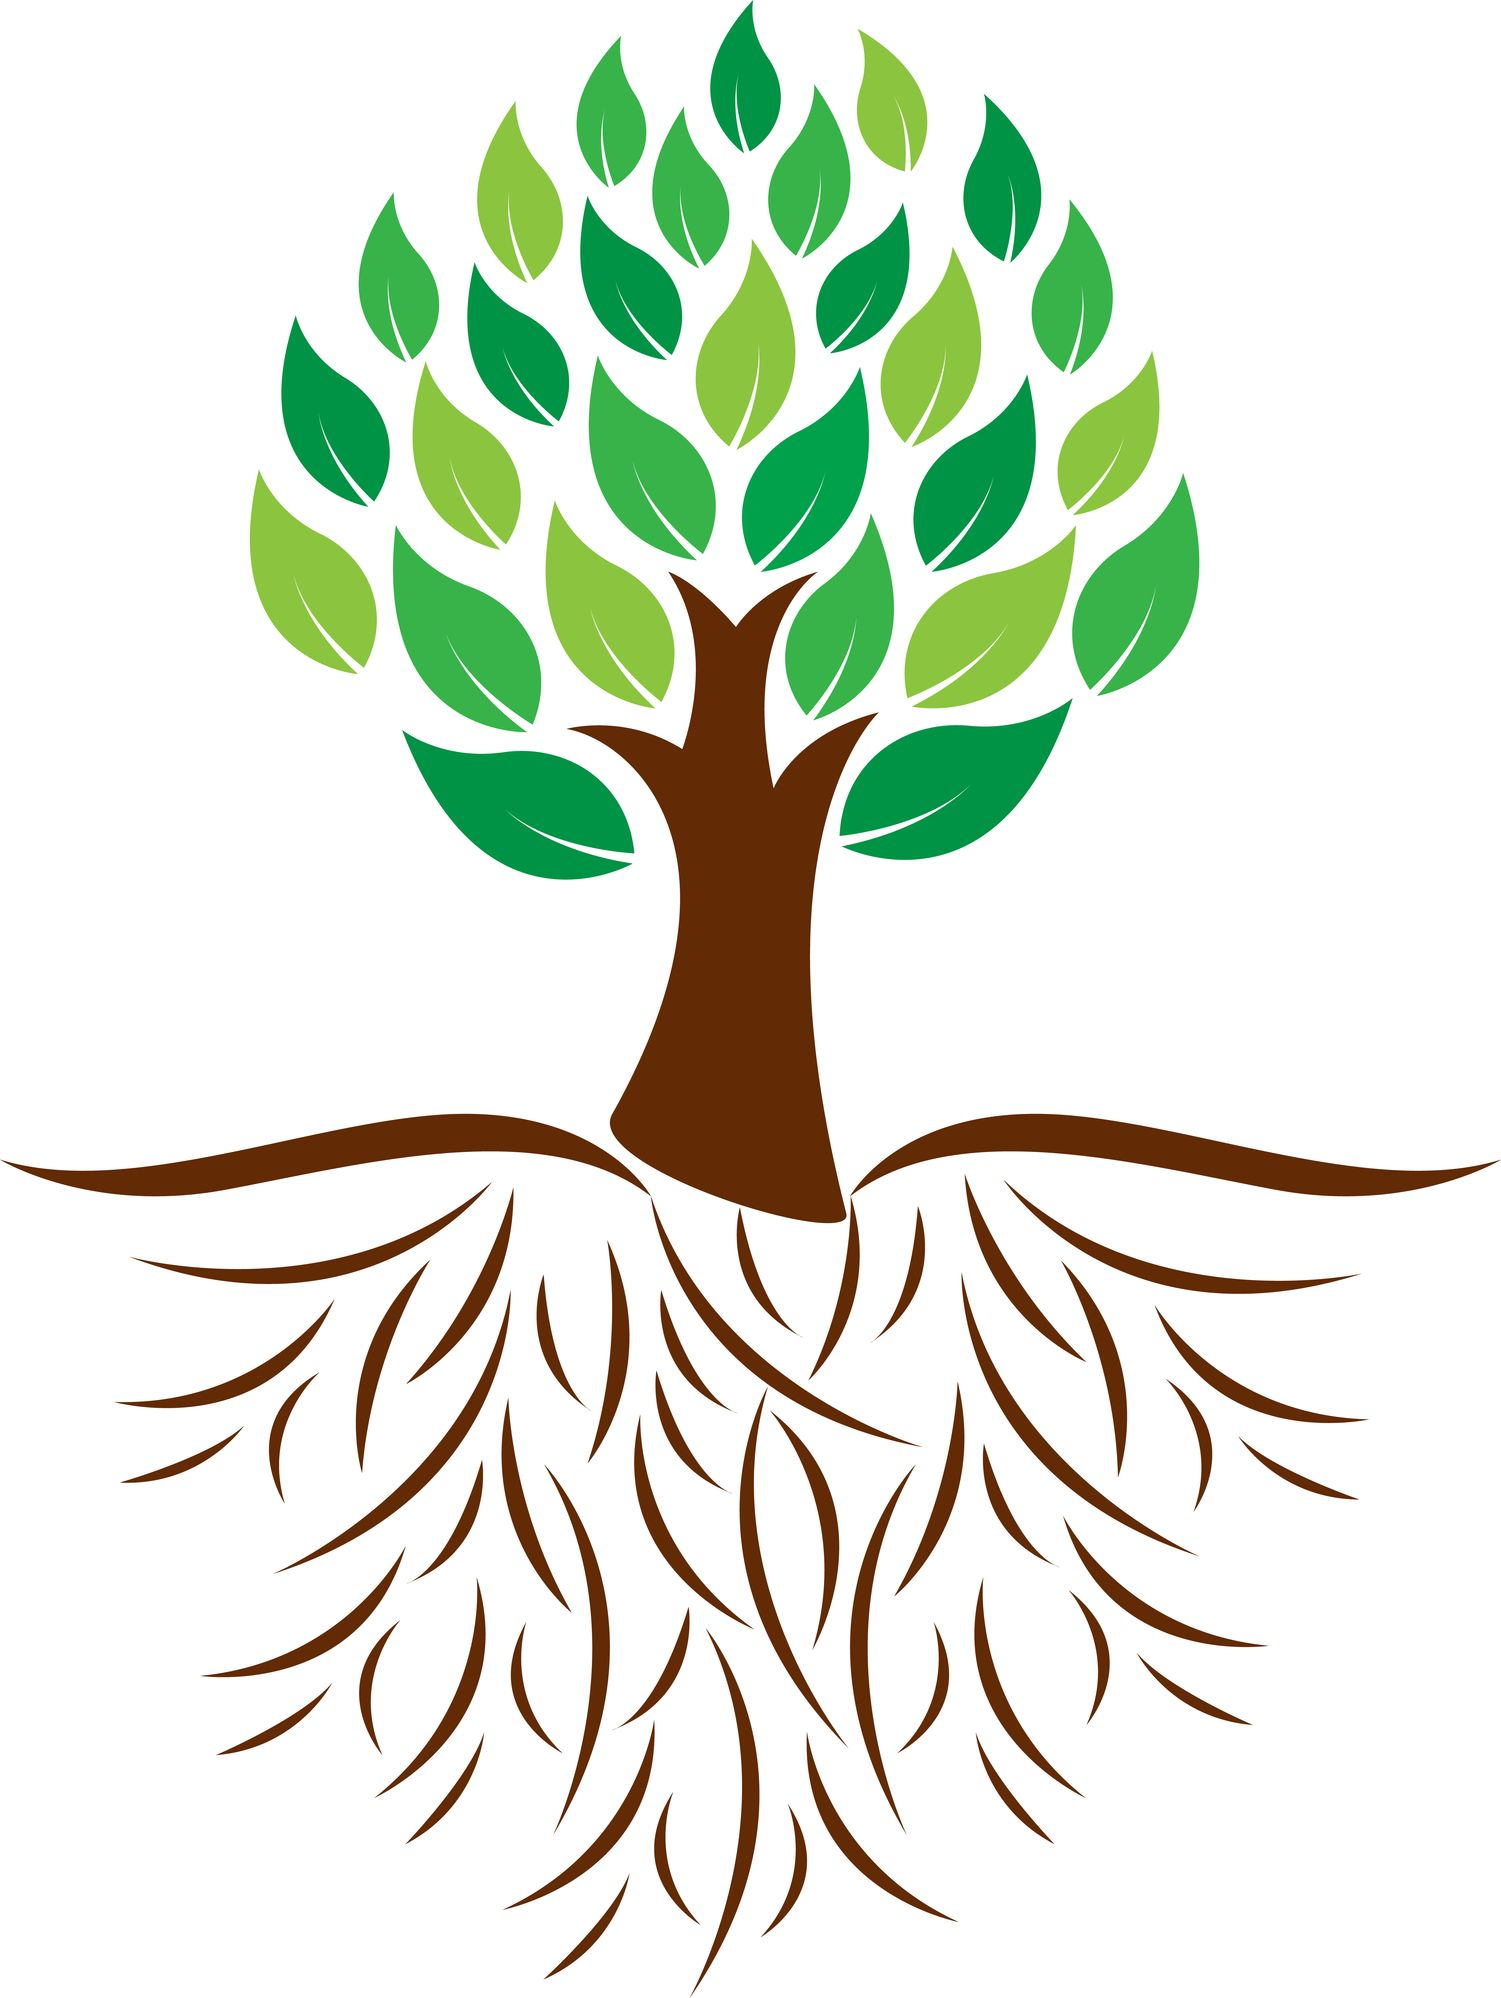 the cove community friday s essay leaves and roots christian rh pinterest com clipart tree with roots and leaves clipart tree with roots and leaves